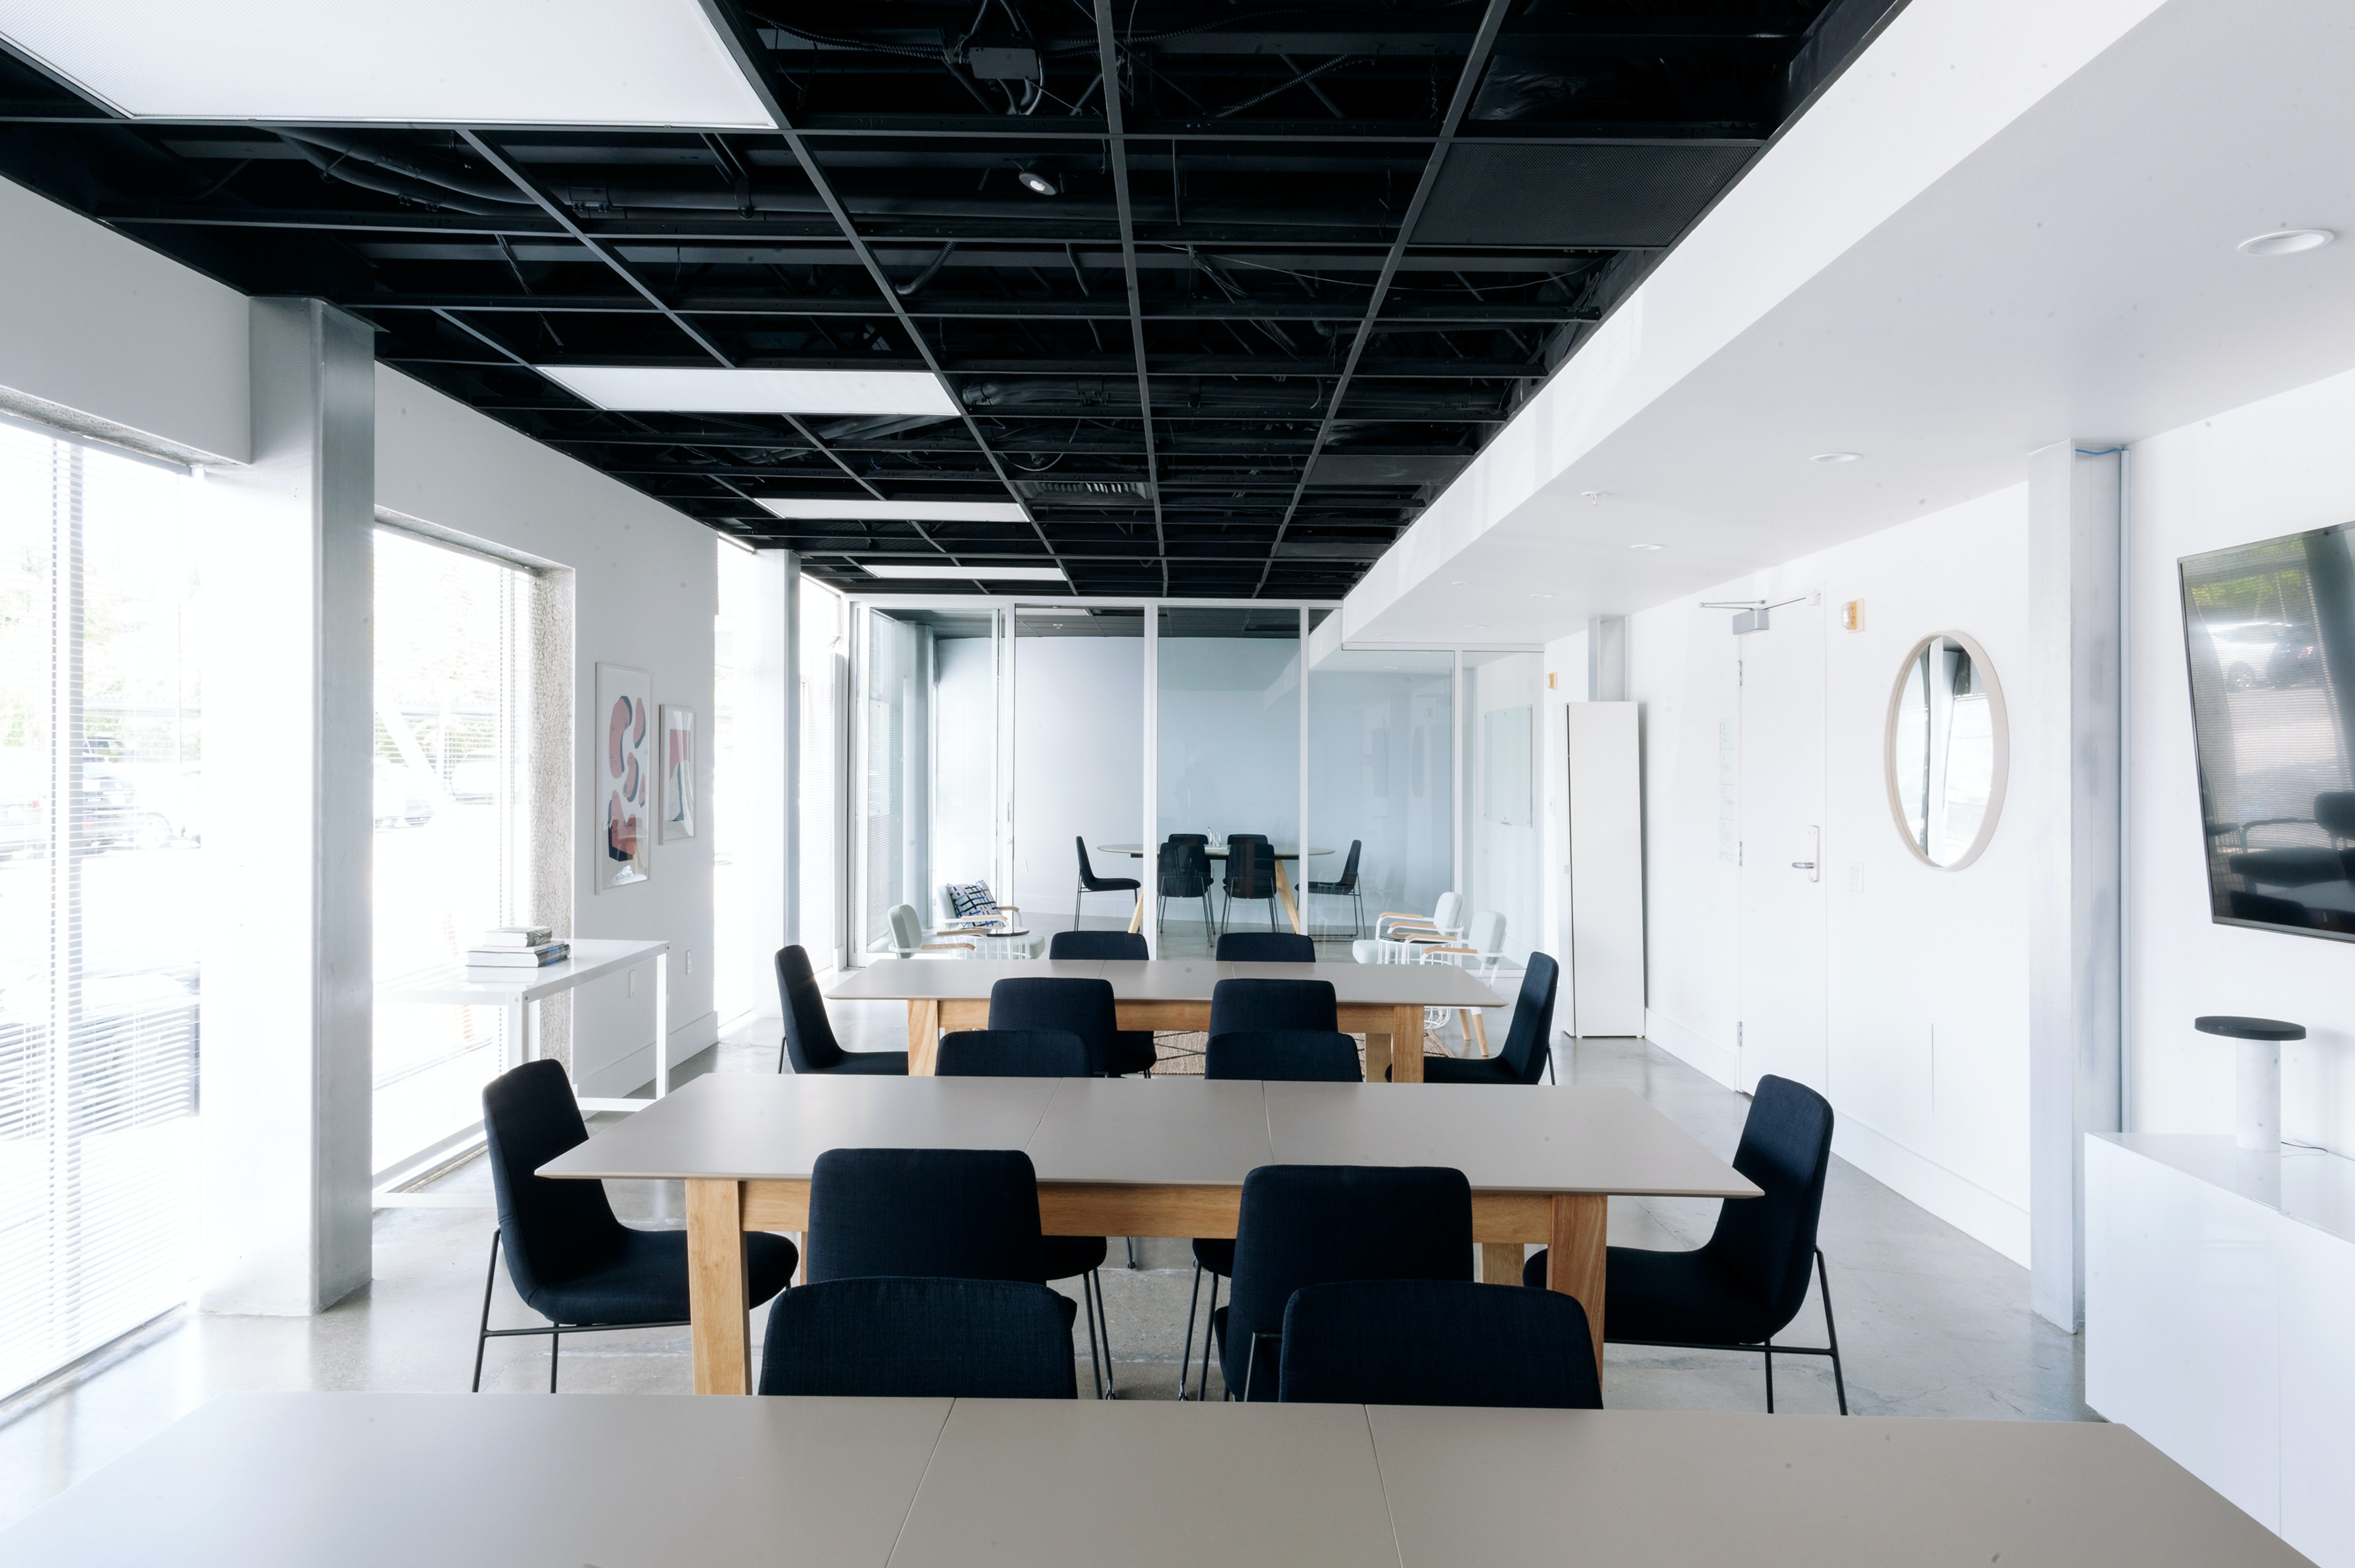 collaboration space at 3535 Hayden Ave ,Los Angeles